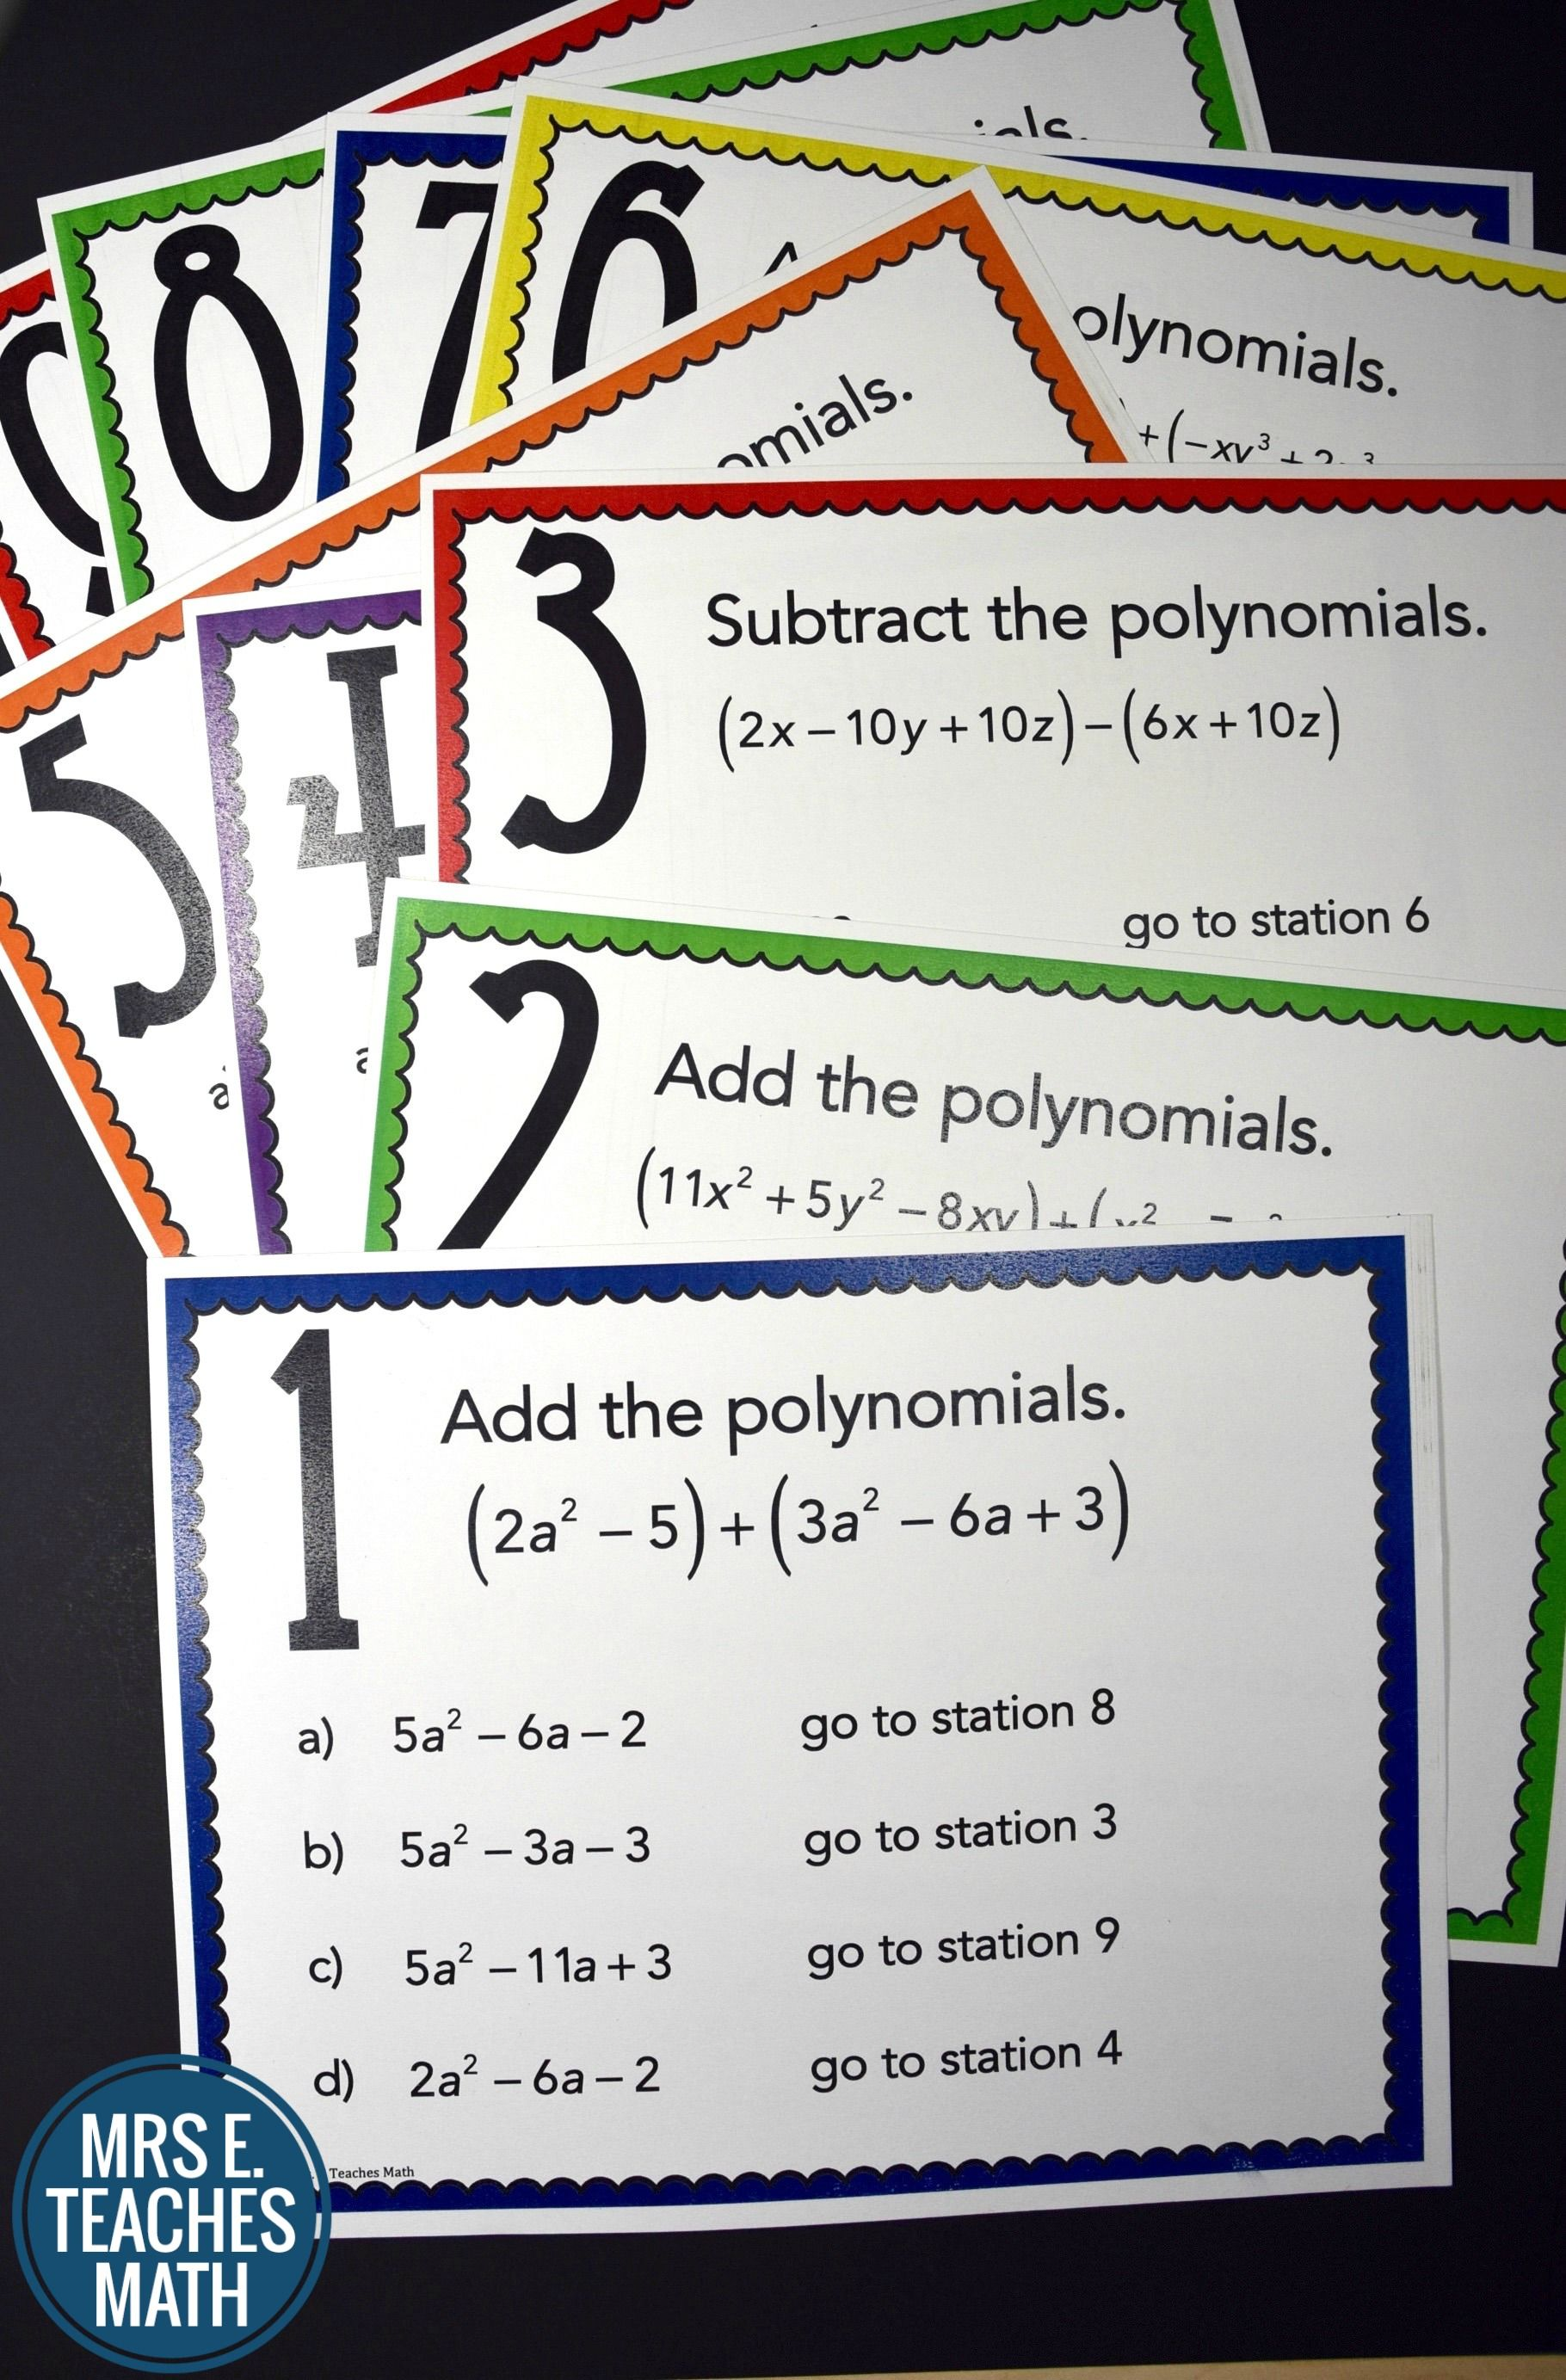 Add and Subtract Polynomials Stations Maze Activity | 8th Grade ...